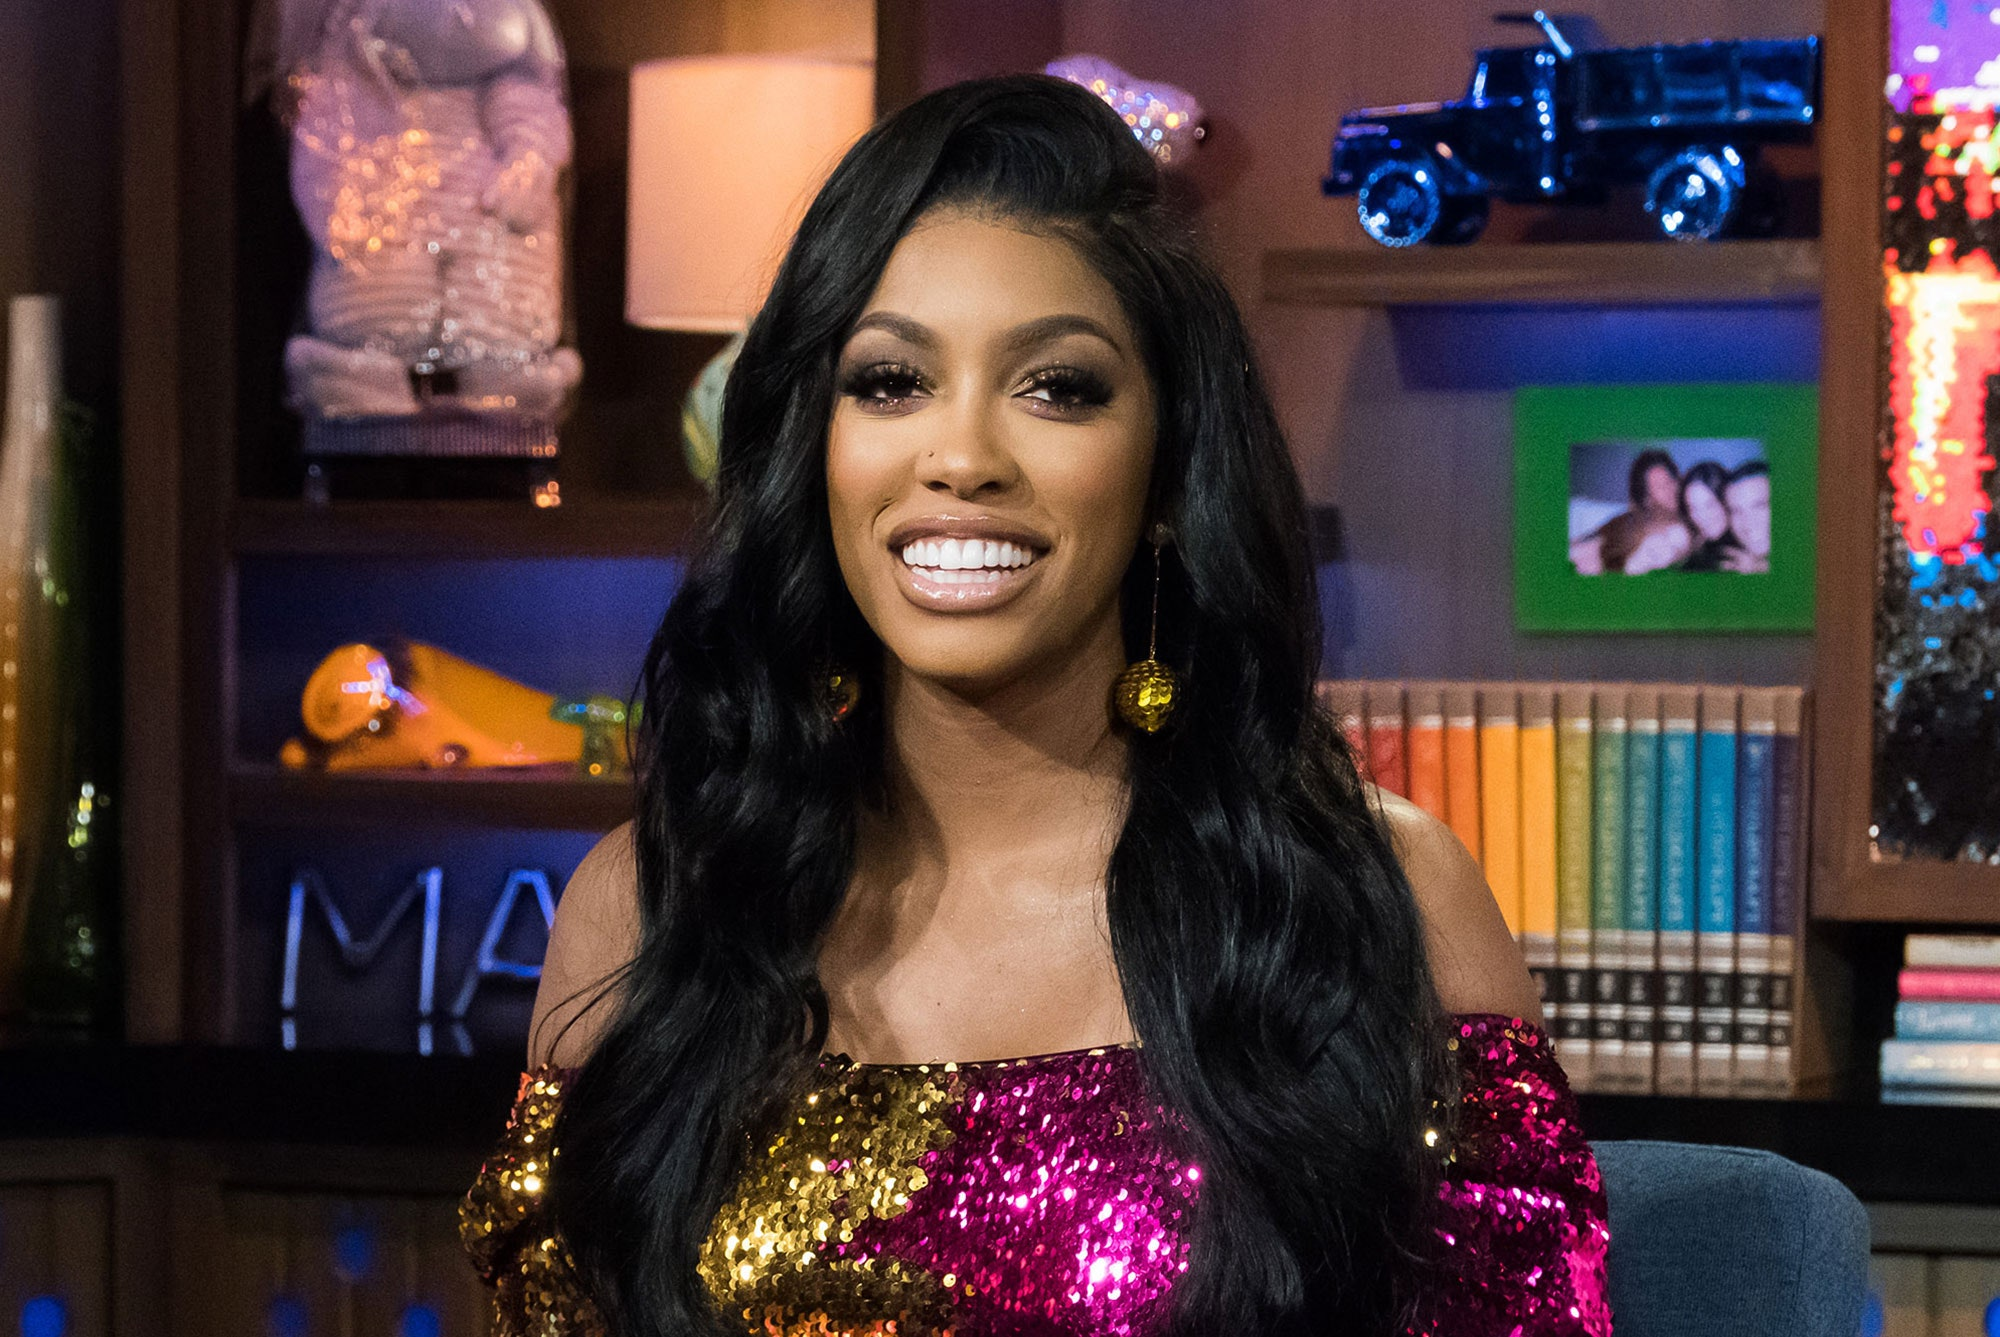 Porsha Williams's Fans Are Completely In Love With Her Line Of Sheets - See Her Video